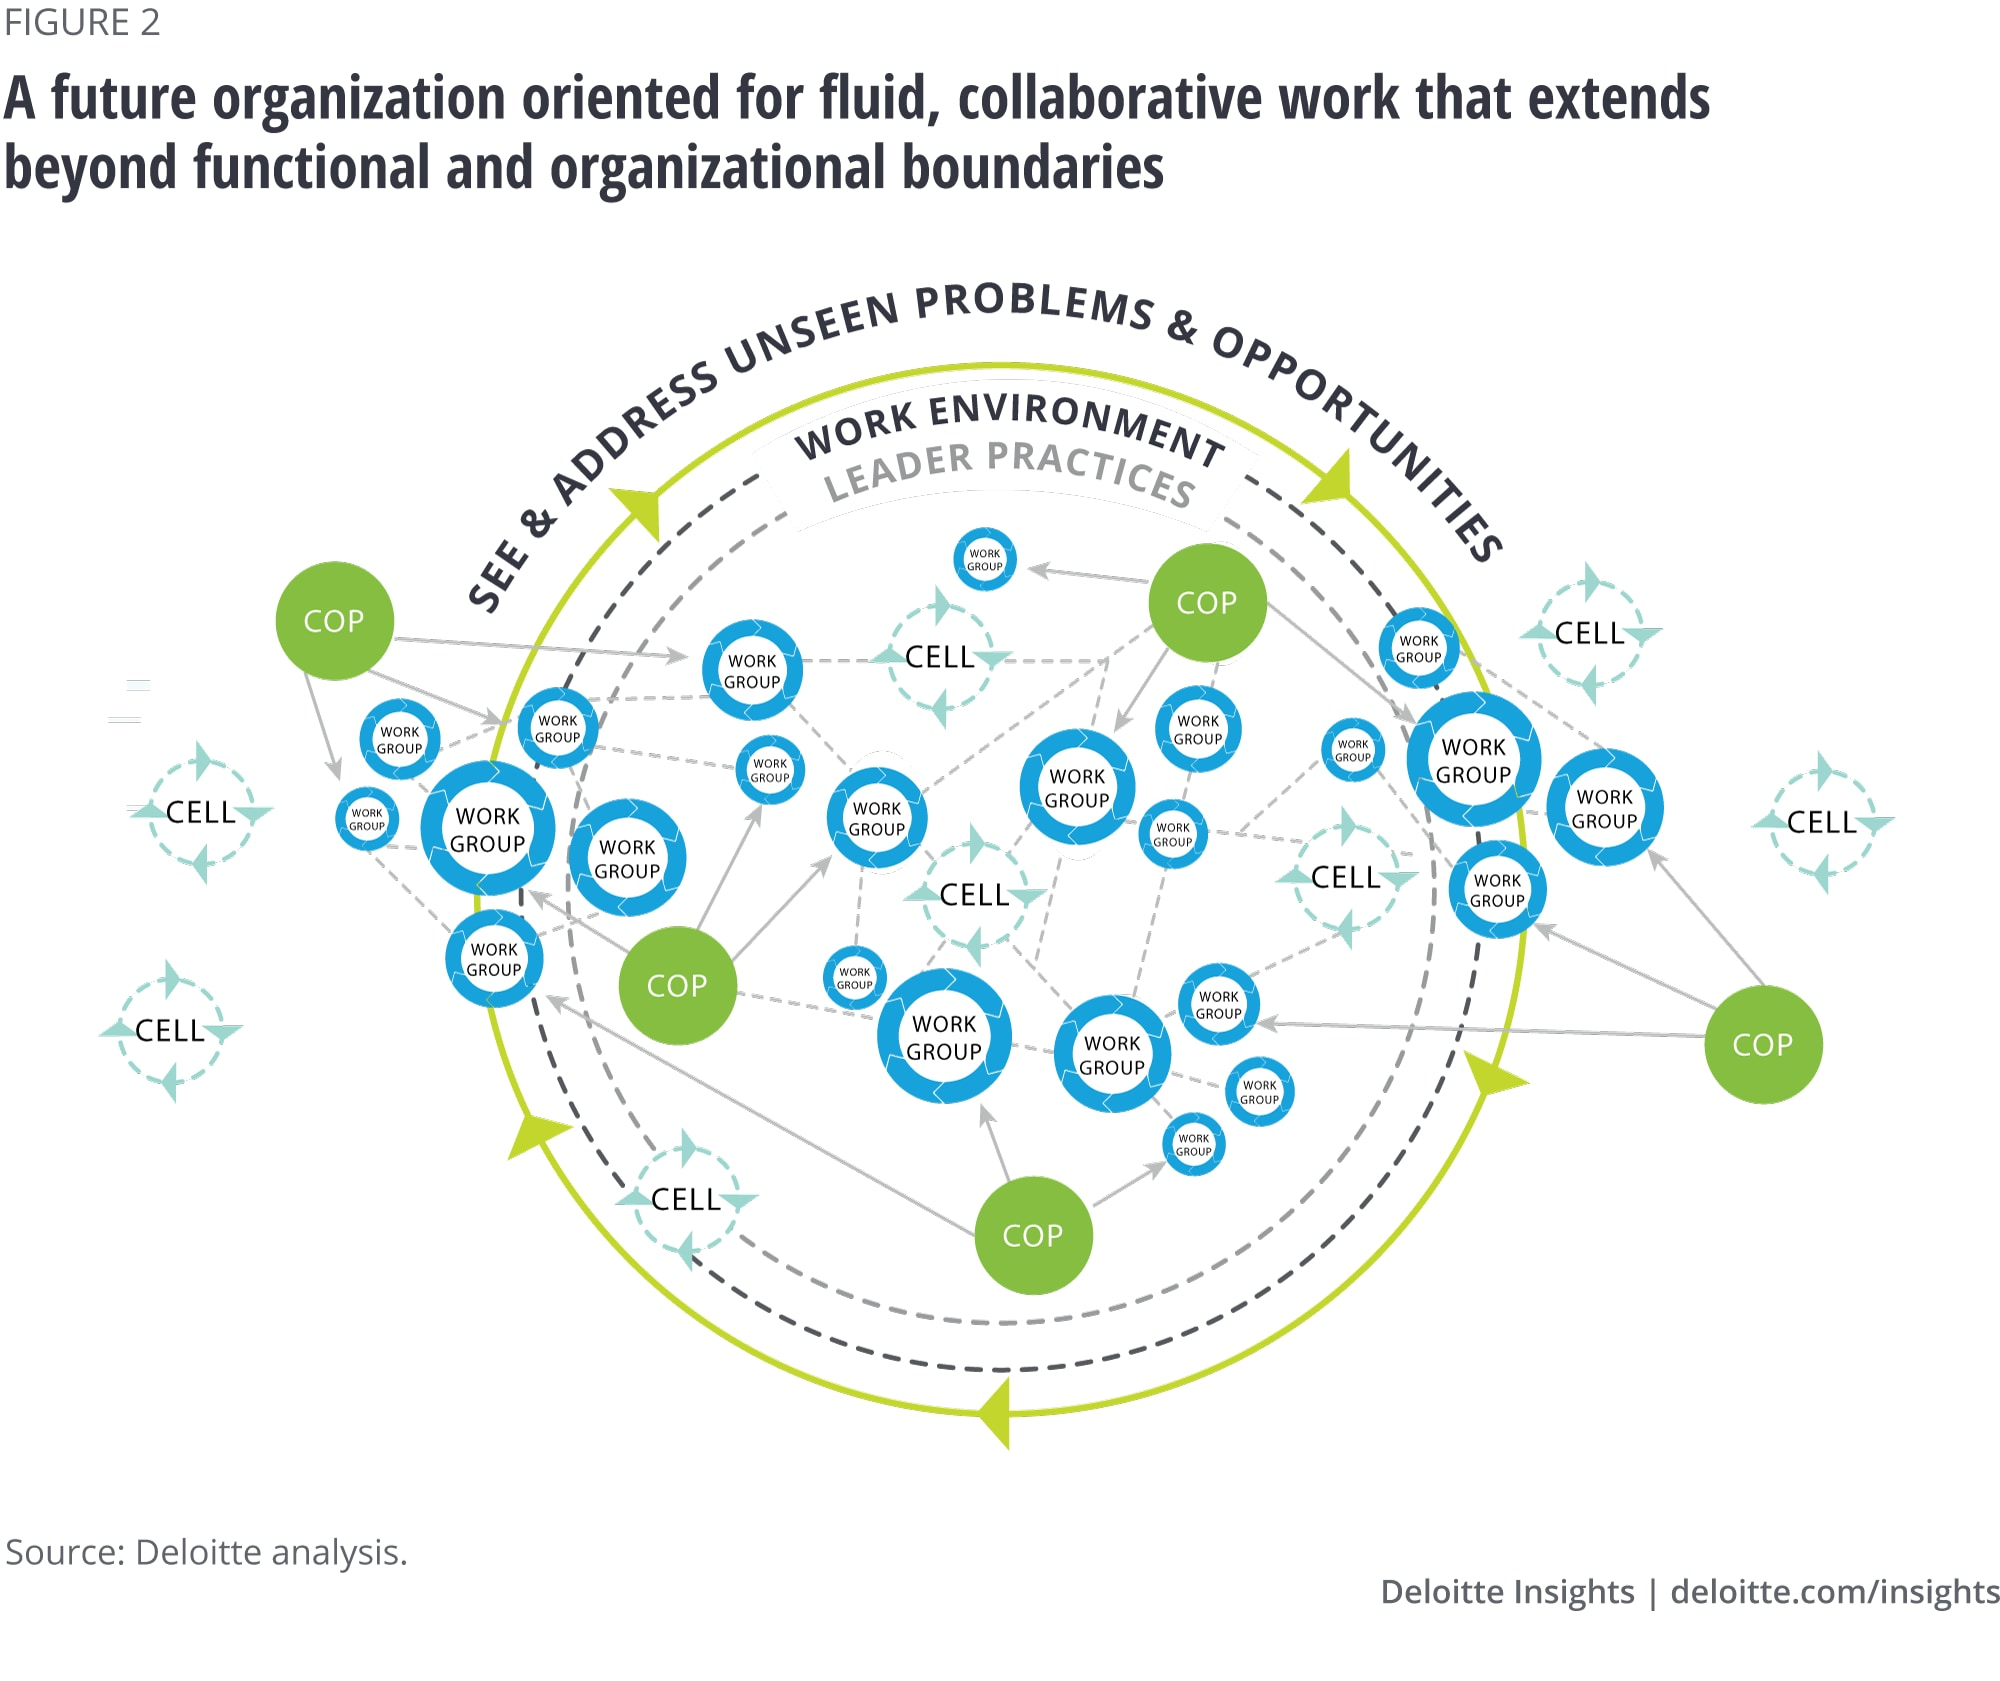 A future organization oriented for fluid, collaborative work that extends beyond functional and organizational boundaries